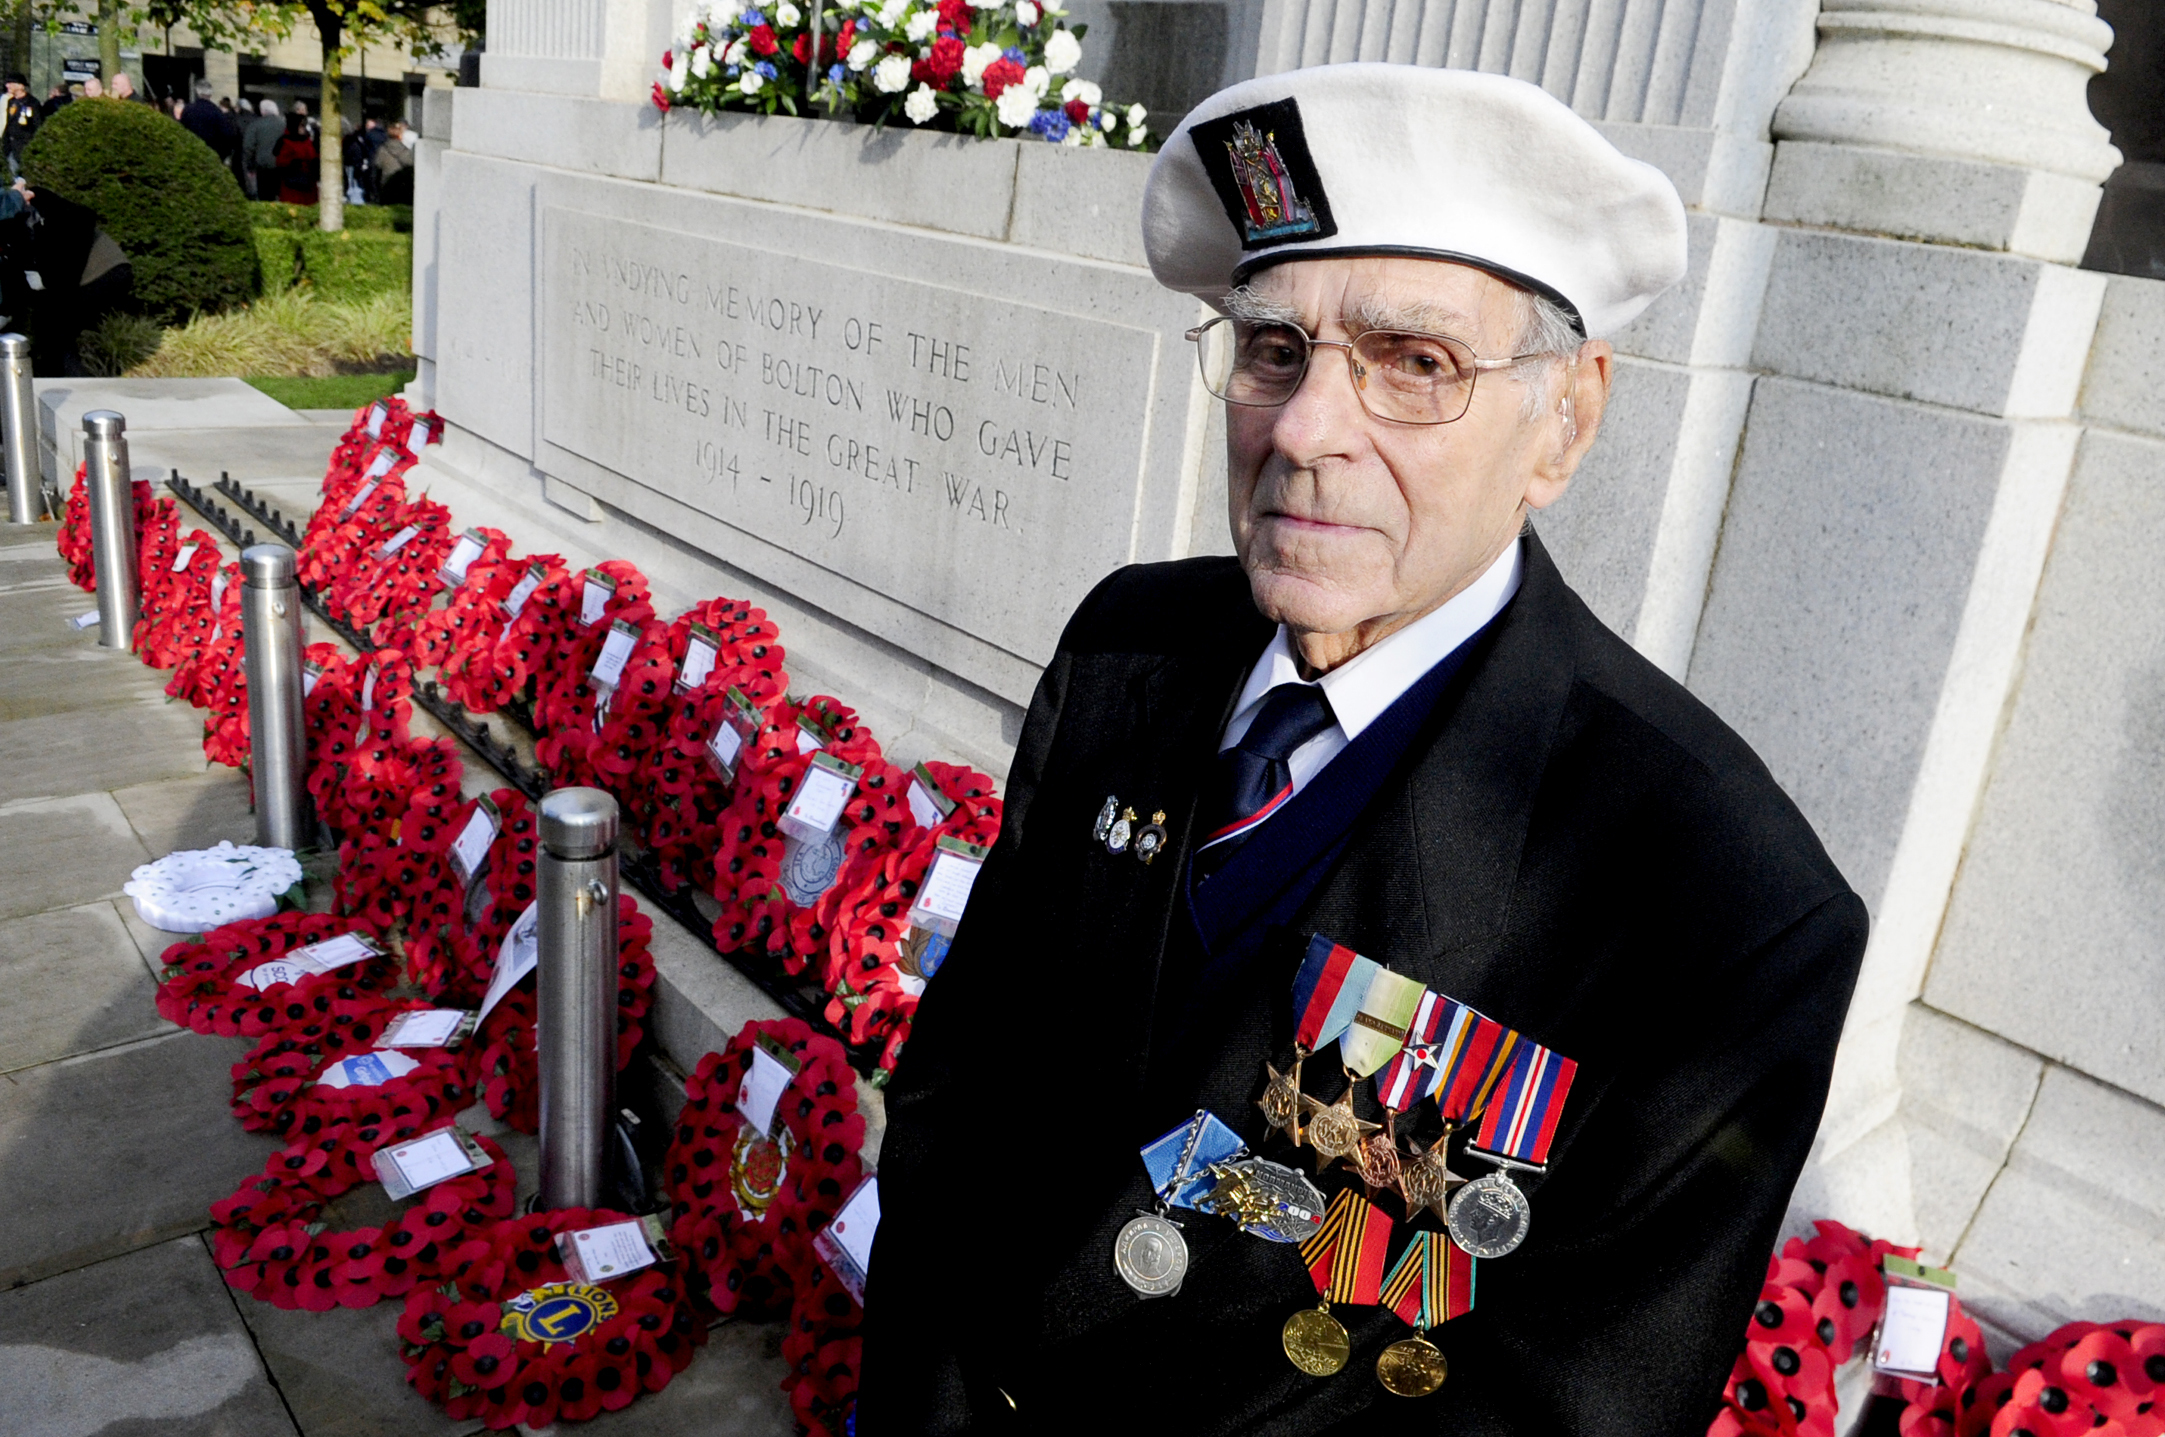 War veteran David Tonge of Westhoughton...Remembrance Sunday Parade on Victoria Square, Bolton. Photo by Nigel Taggart, Newsquest (Bolton) Ltd, Sunday November 9, 2014..